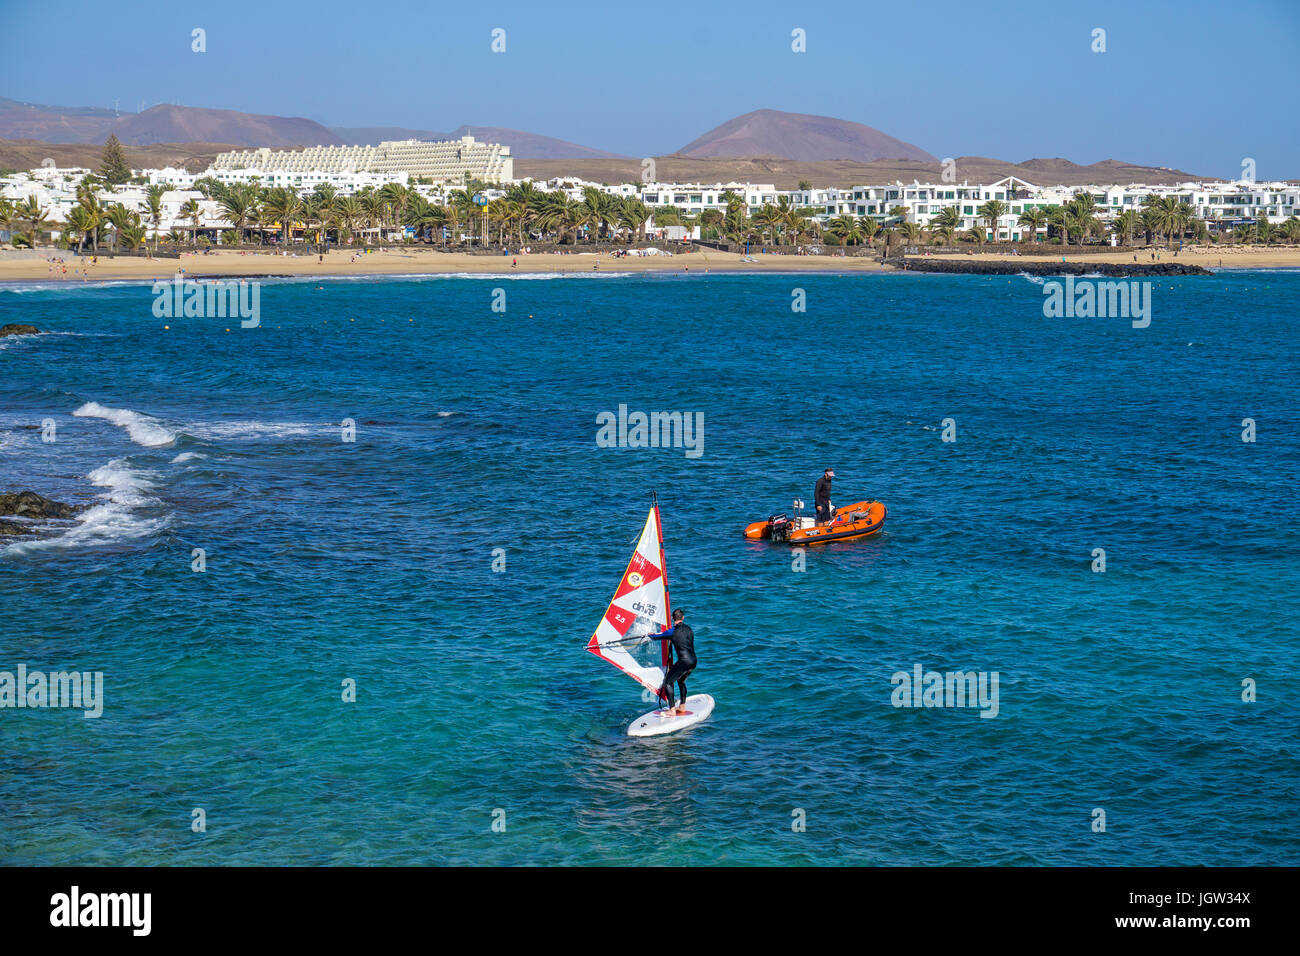 Wind surfer at Playa de las Cucharas, bathing beach at Costa Teguise, Lanzarote, Canary islands, Europe - Stock Image